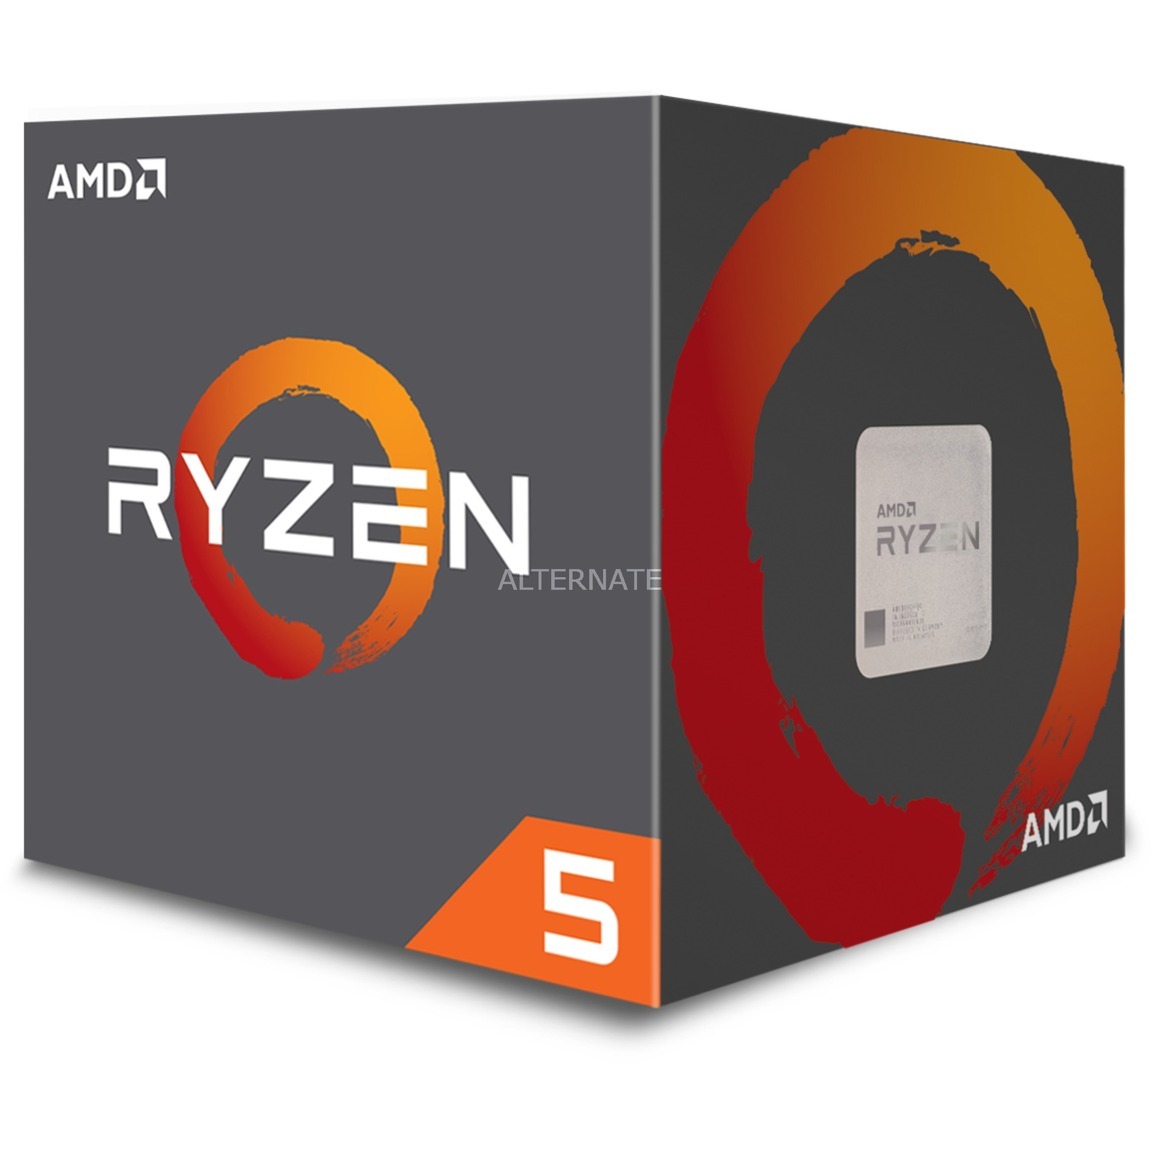 Ryzen 5 1500X 3,6 GHz socket AM4 processeur